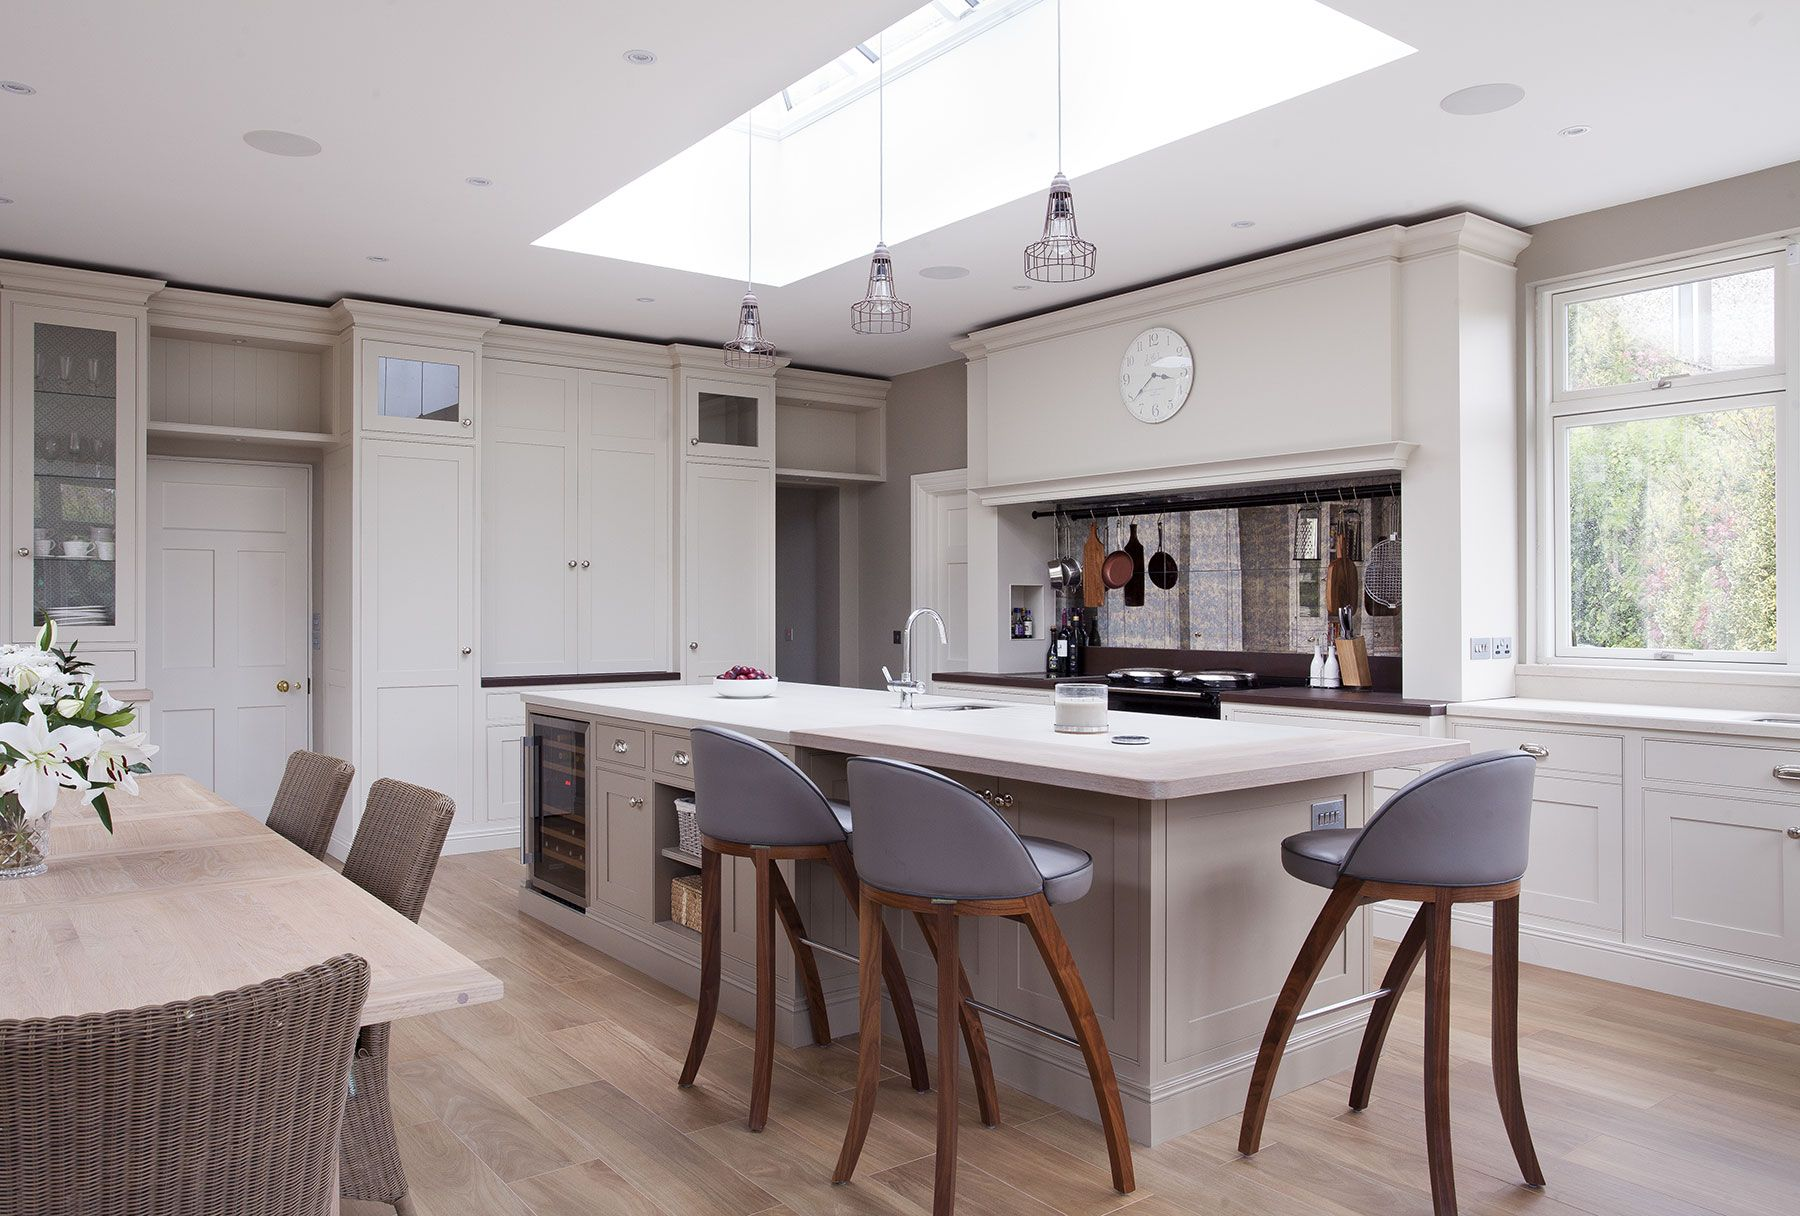 A luxury kitchen design Ireland expertly handcrafted using